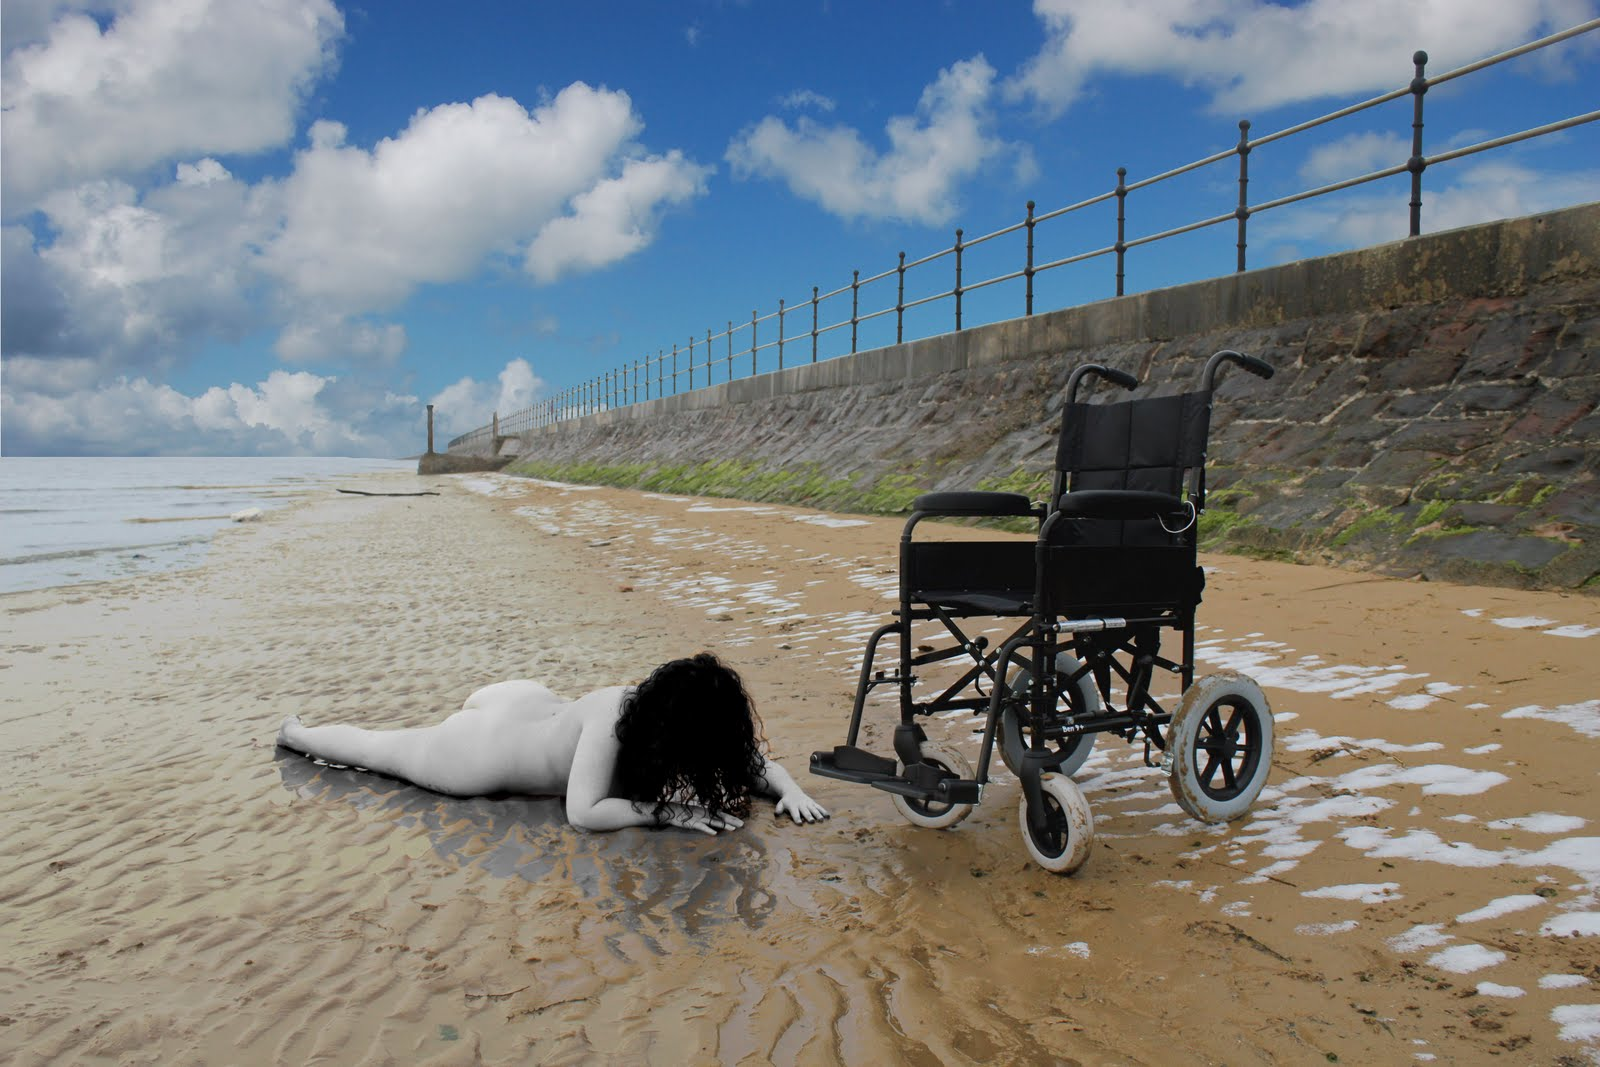 Picture of Kaliya Franklin on a beach, out of her wheelchair